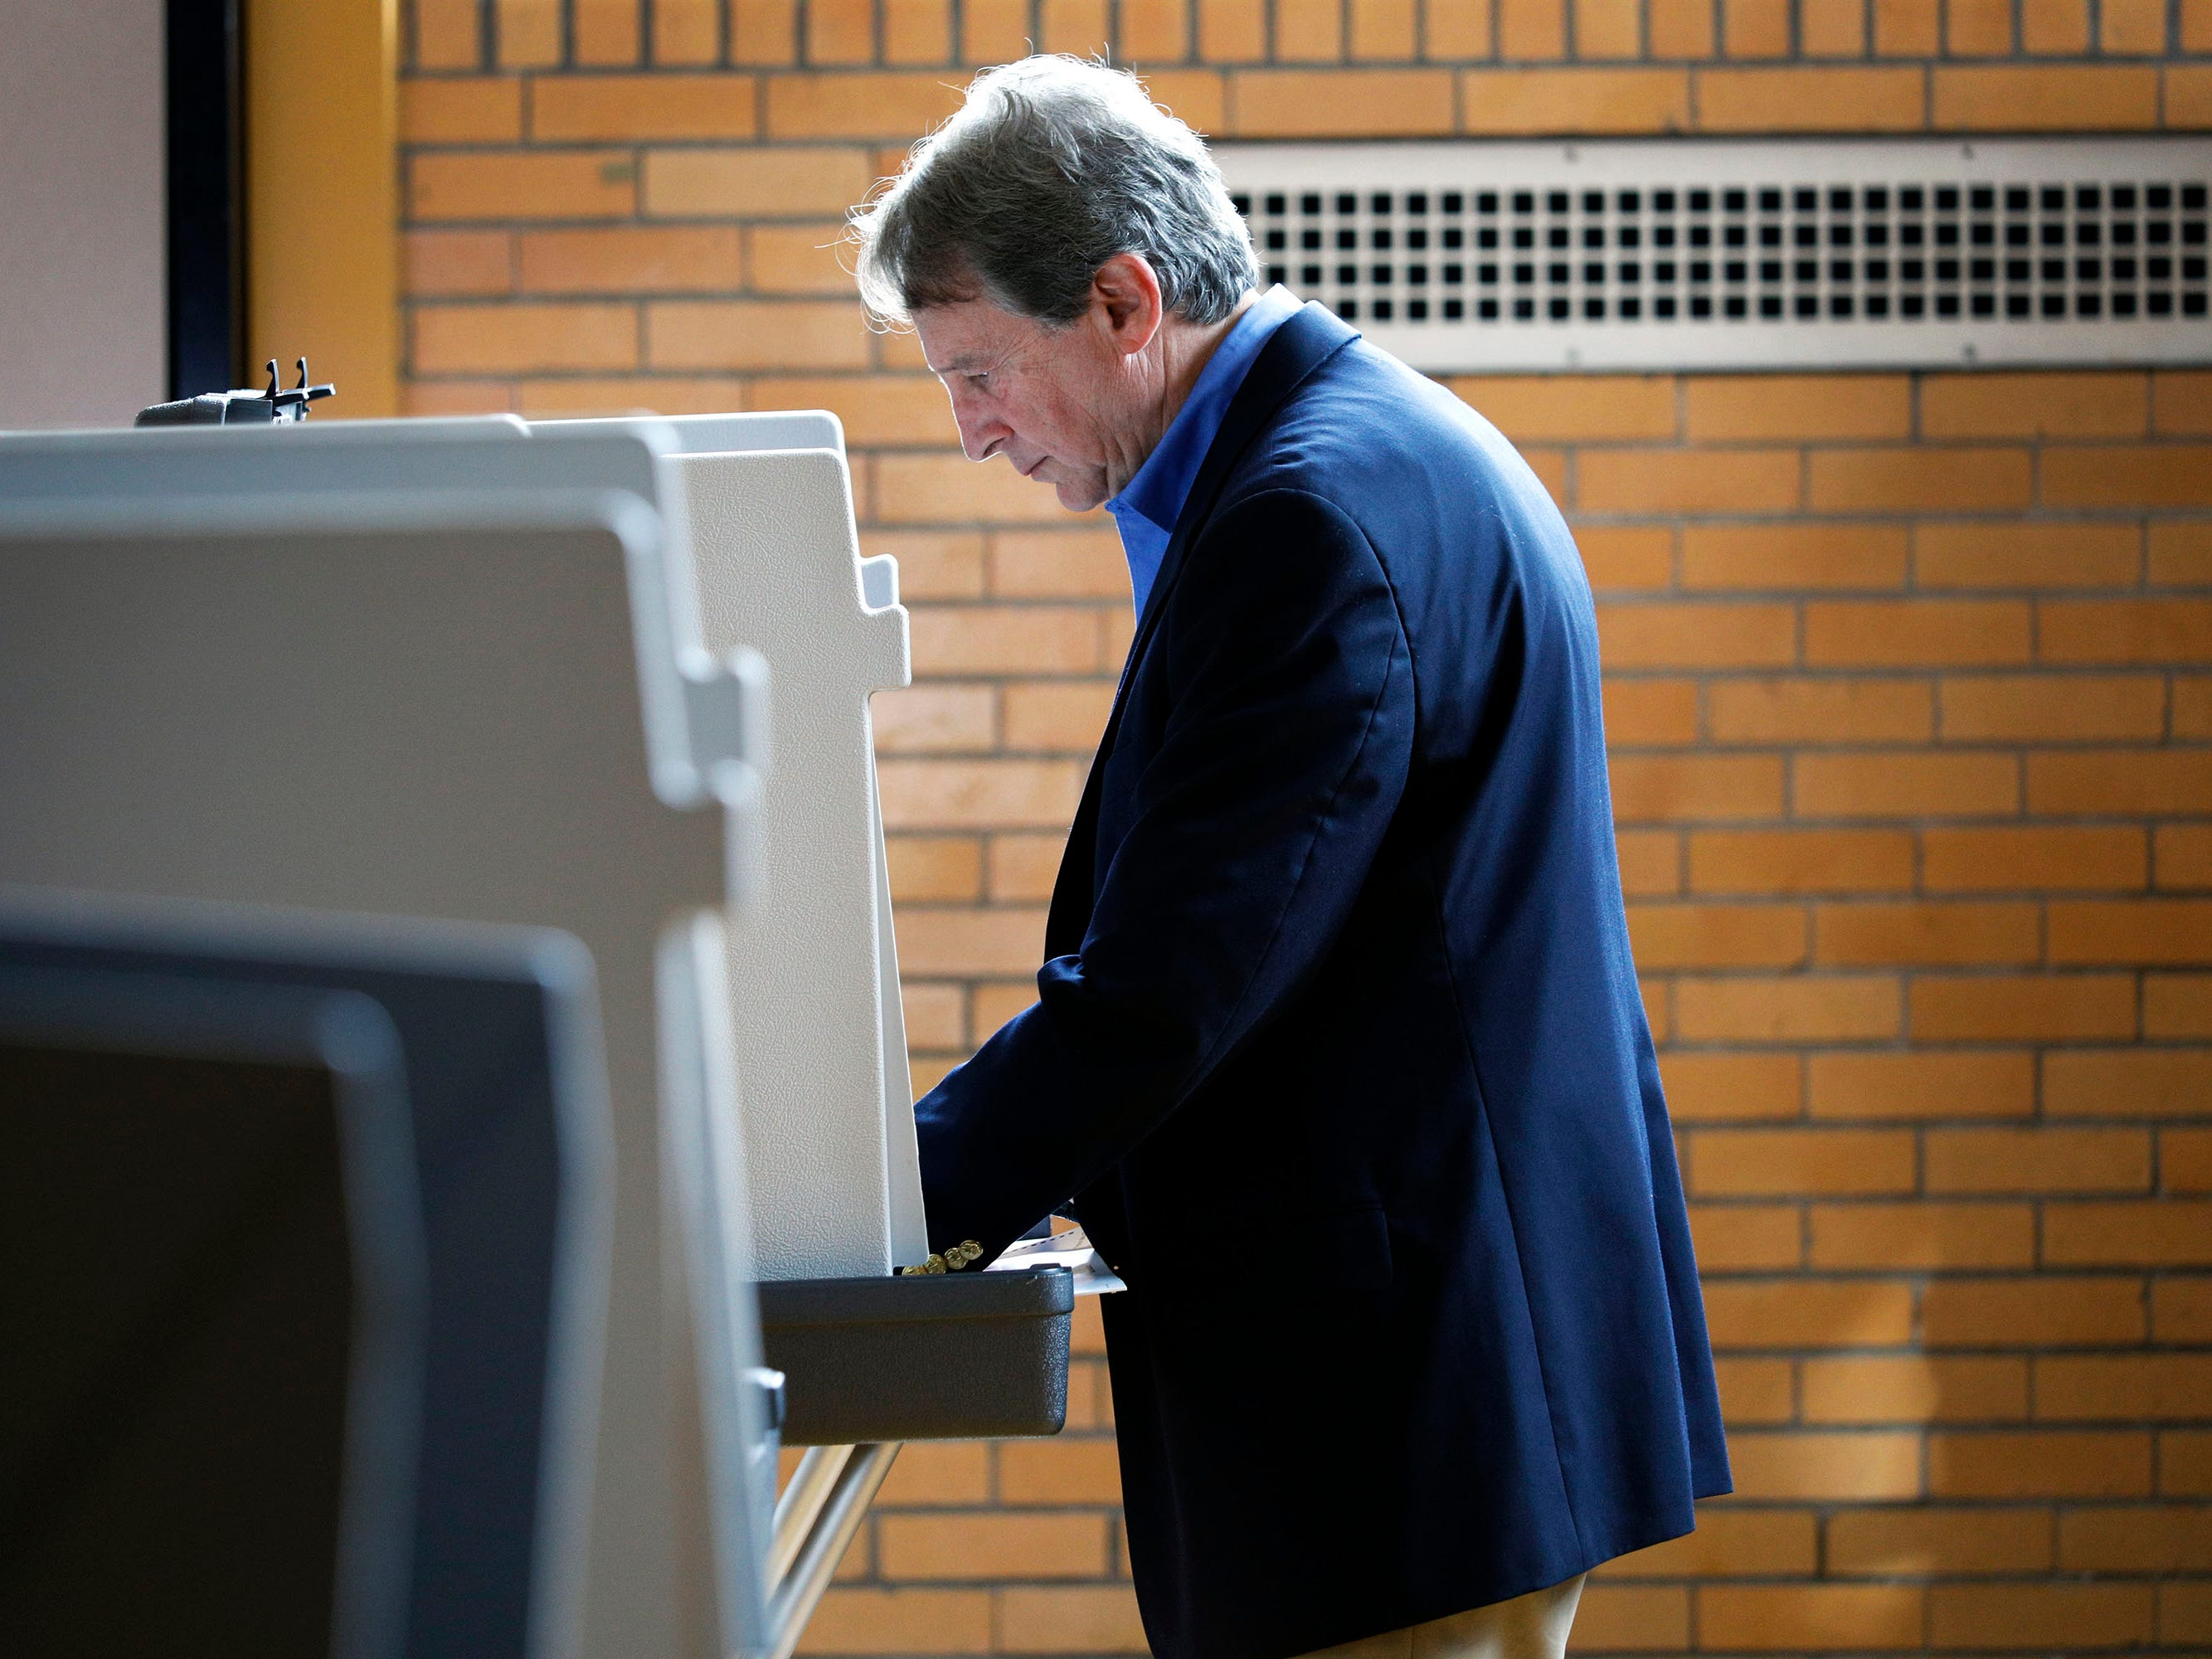 Sandy Pensler, Michigan Republican candidate for the U.S. Senate, casts his vote in the Michigan Primary election at Trombly School August 7, 2018 in Grosse Pointe Park, Michigan. Pensler's opponent, Republican John James, has received President Donald Trump's endorsement.